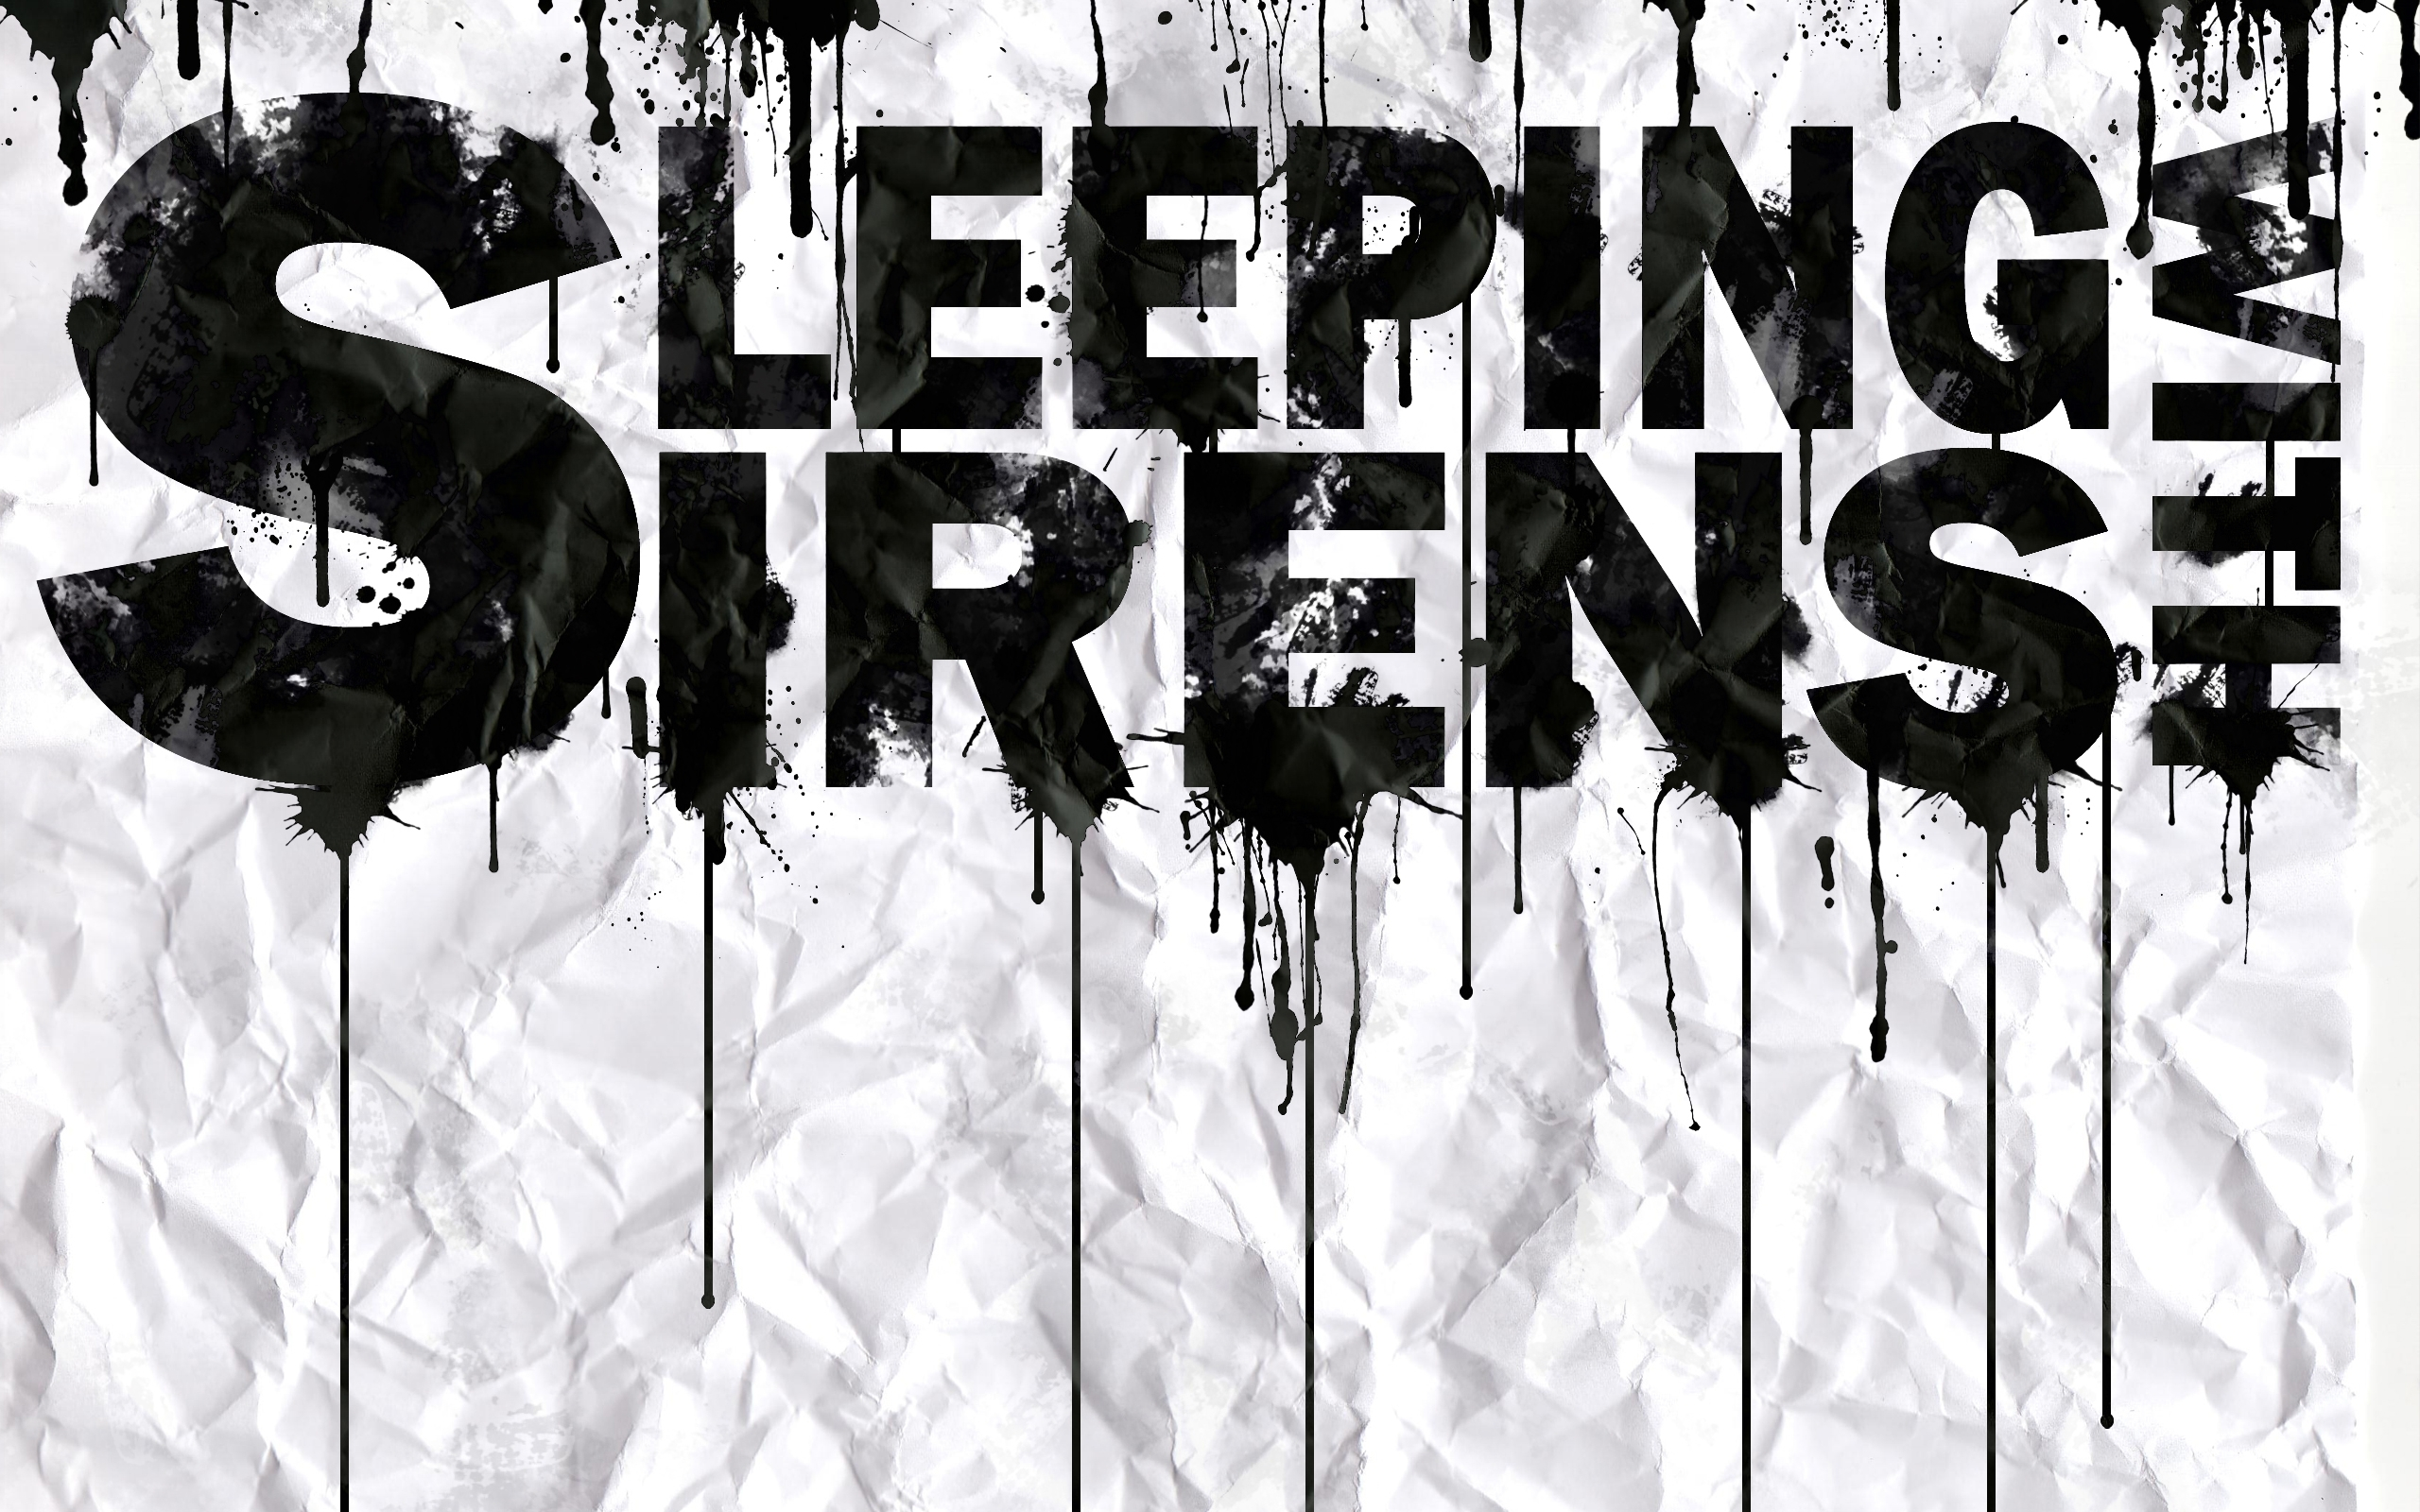 sleeping with sirens 15532 2560x1600 px ~ hdwallsource